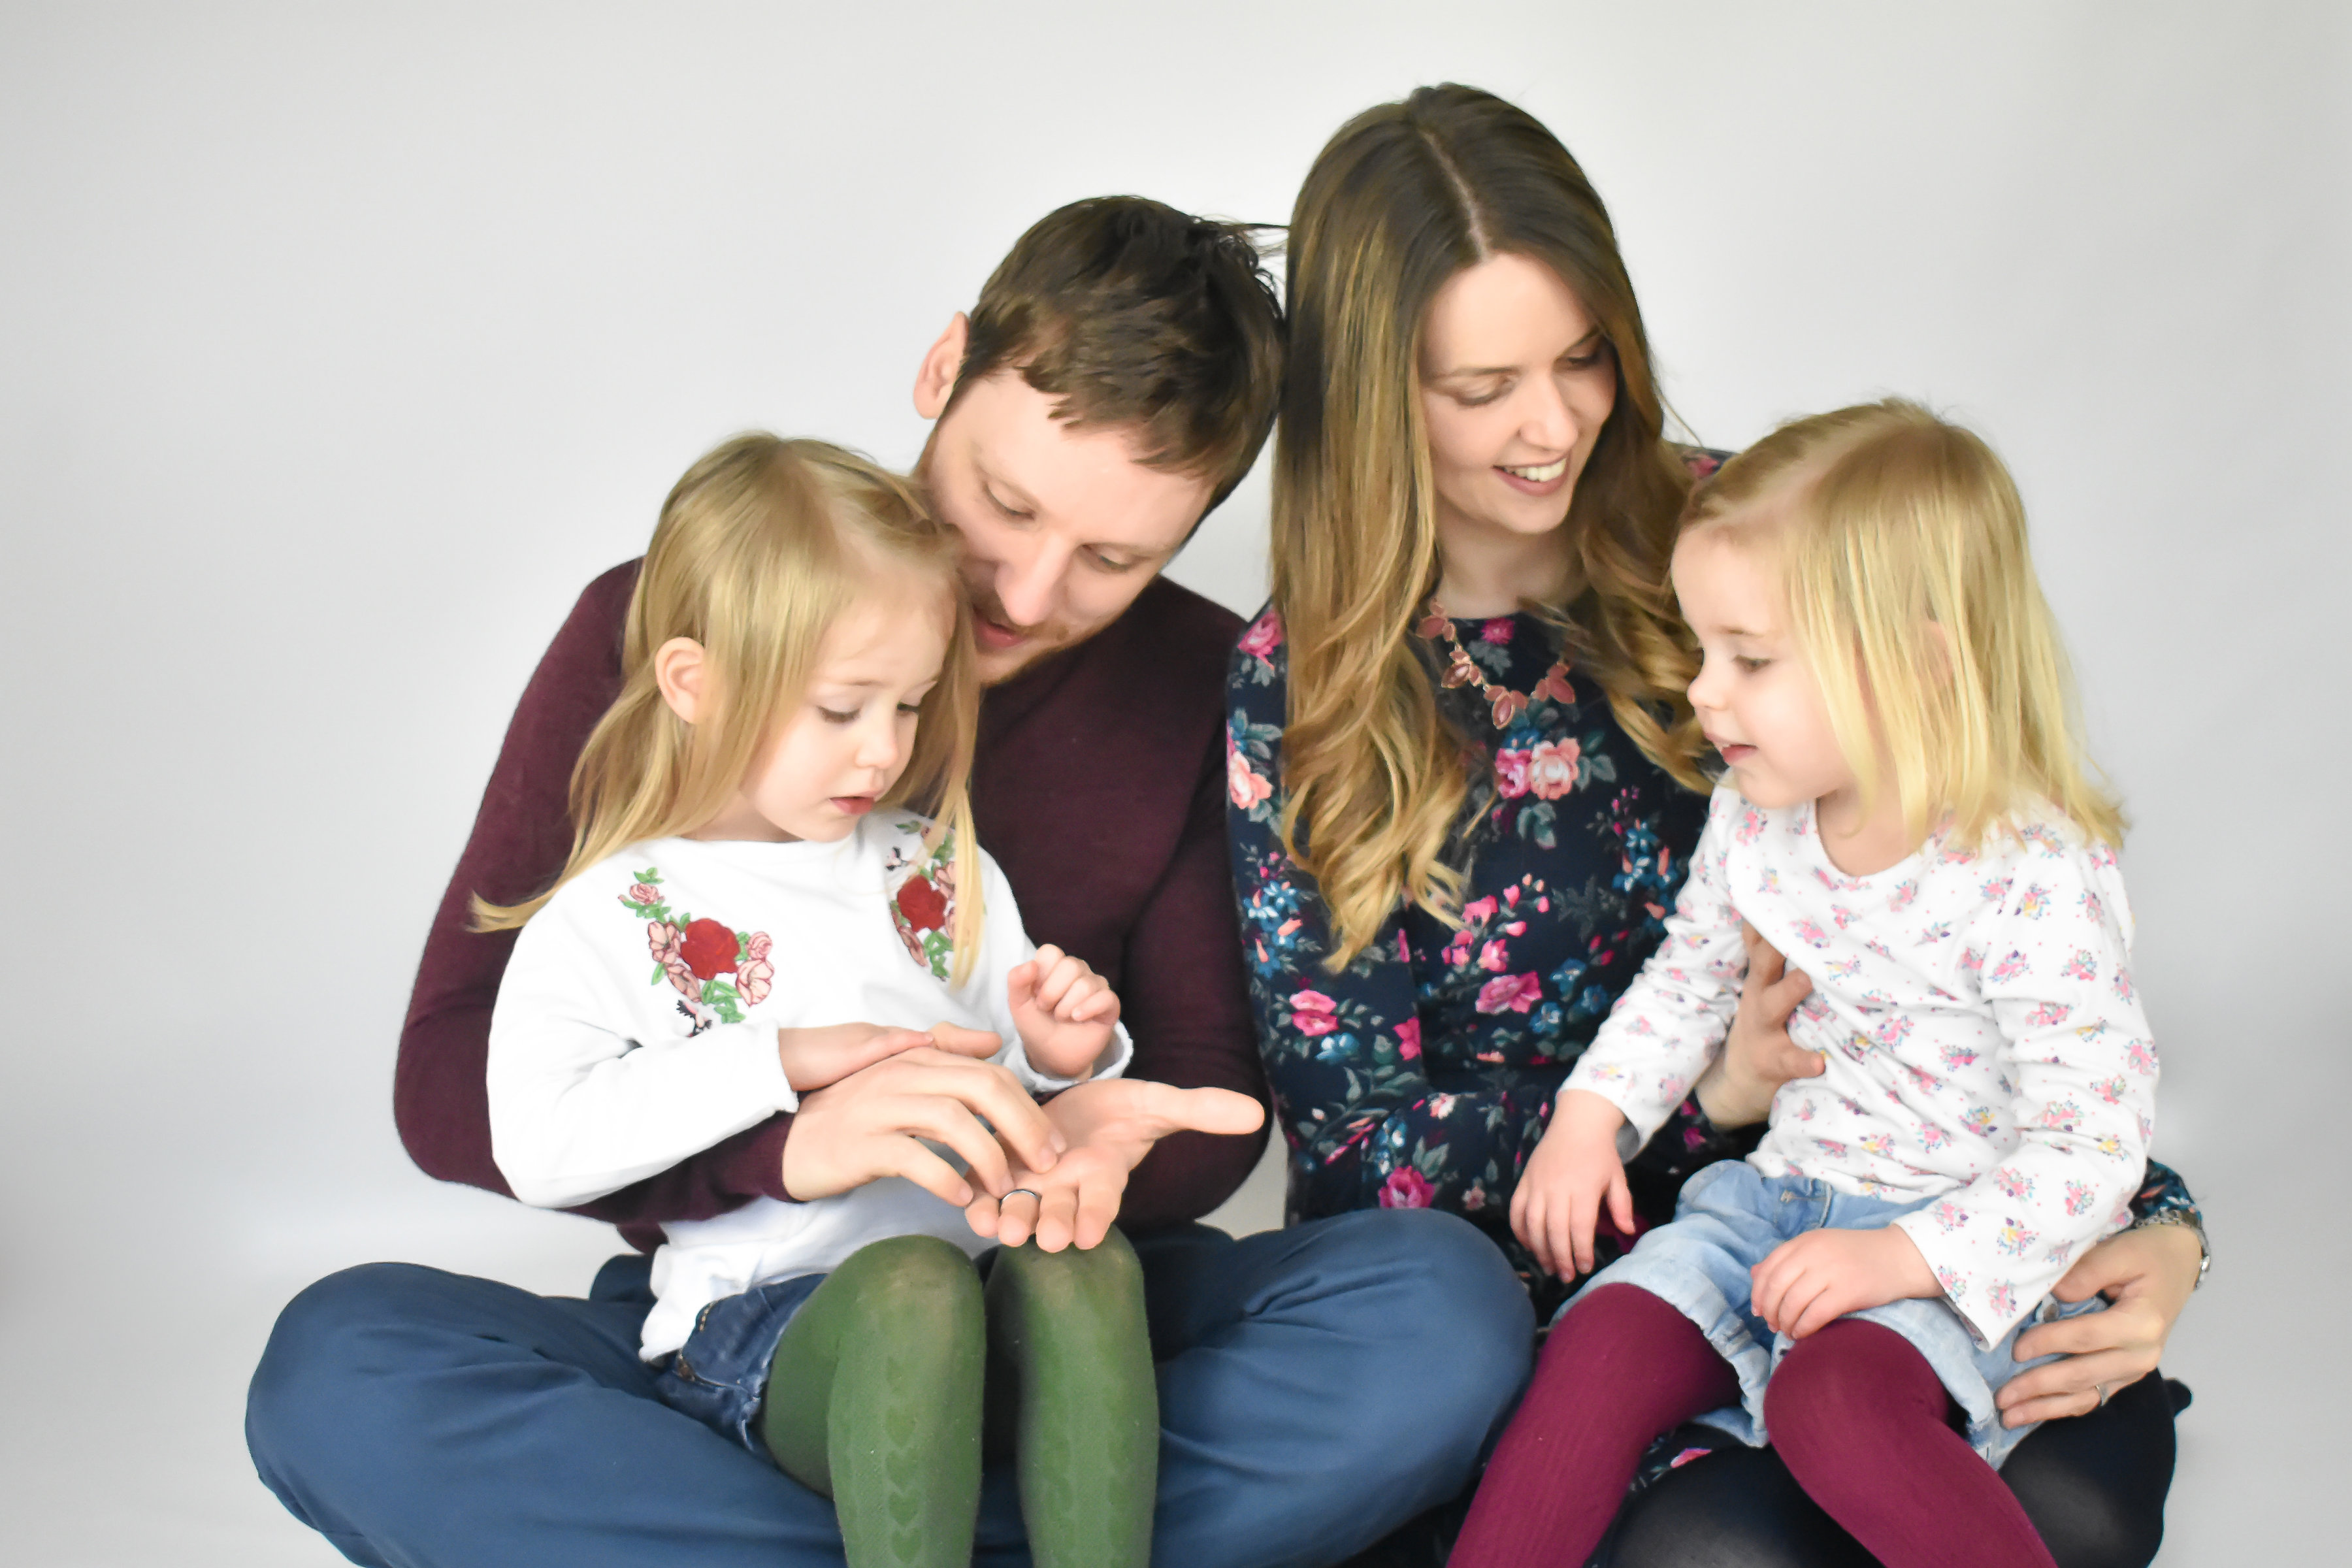 Finding a family photographer